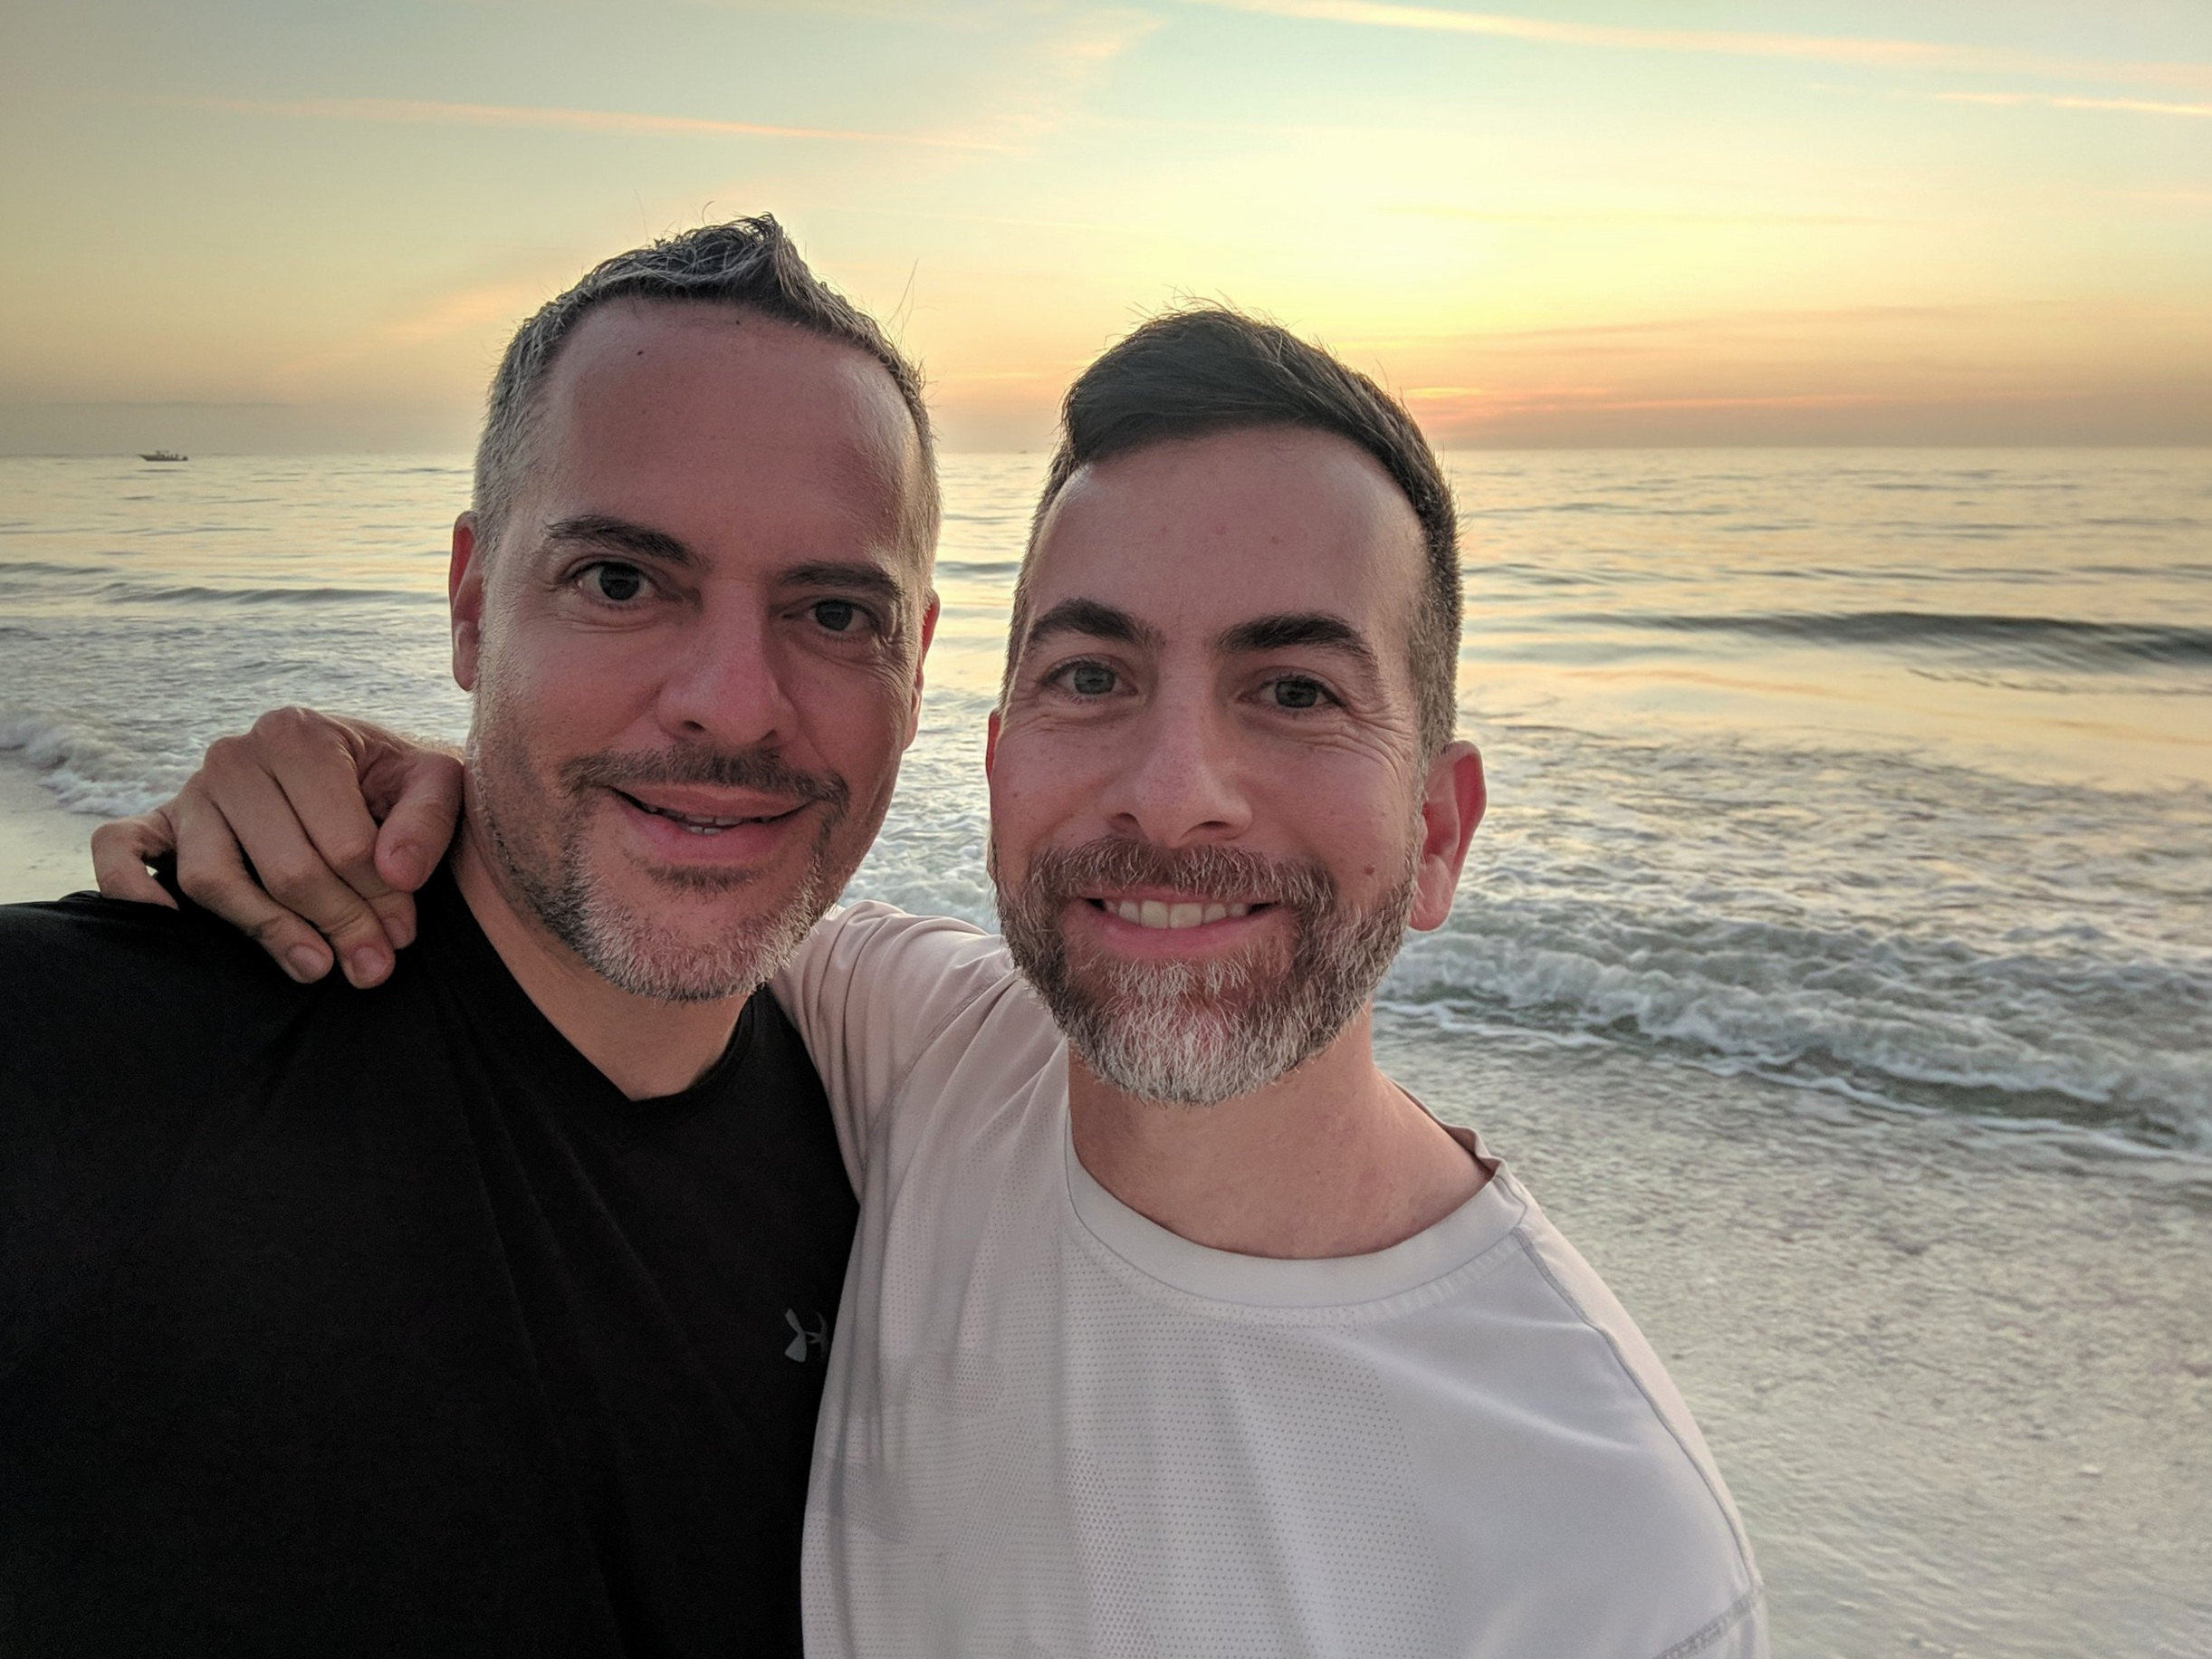 Me (on the left) and Fernando, the final day of 2018